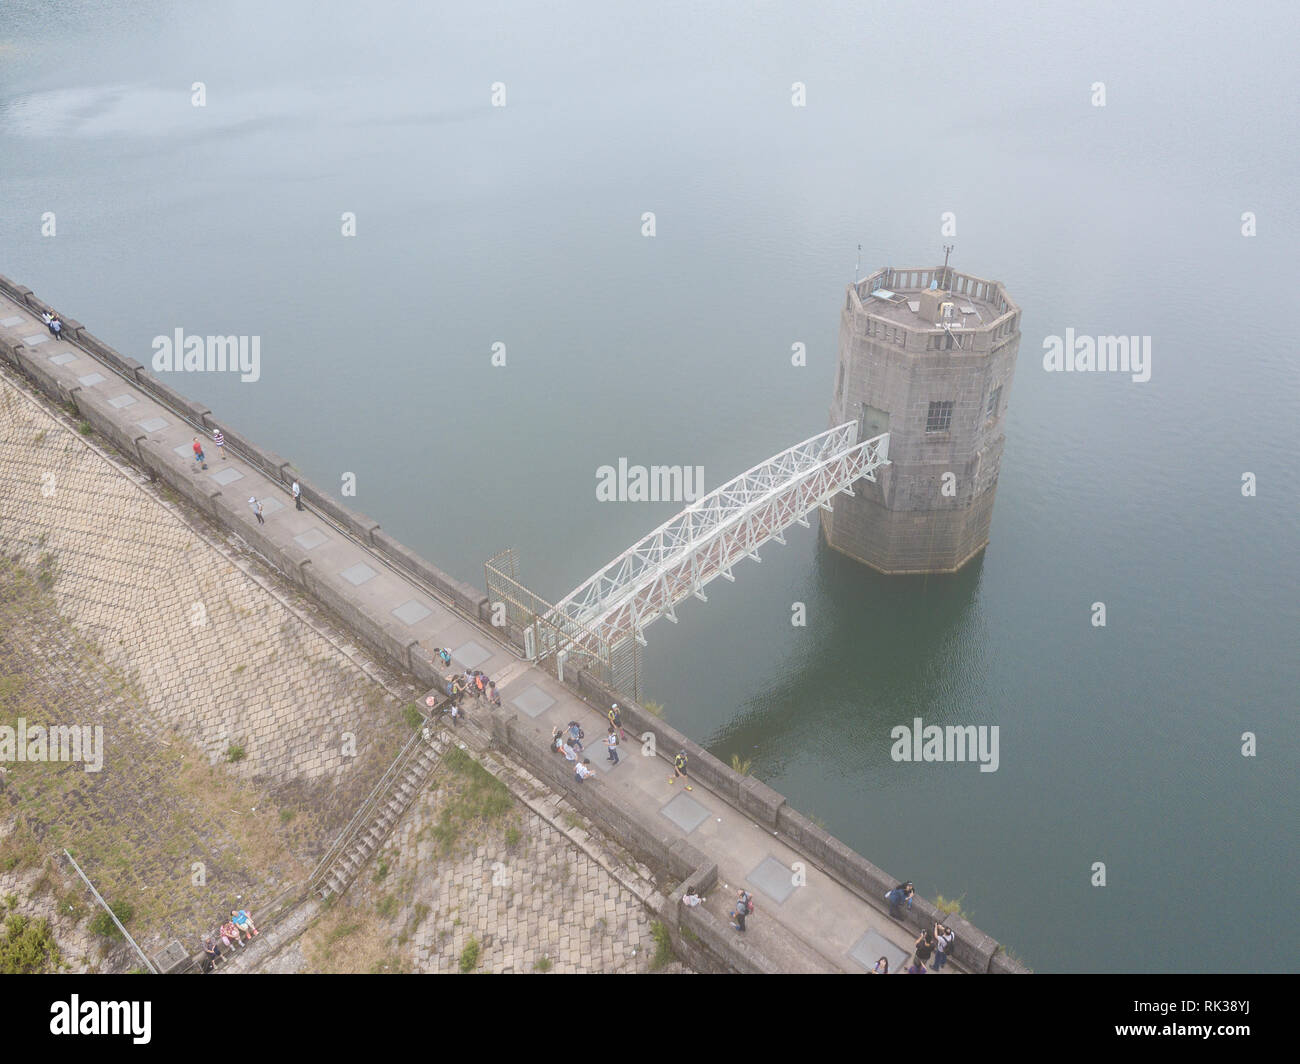 A drone view of the Shing Mun Reservoir in Hong Kong - Stock Image